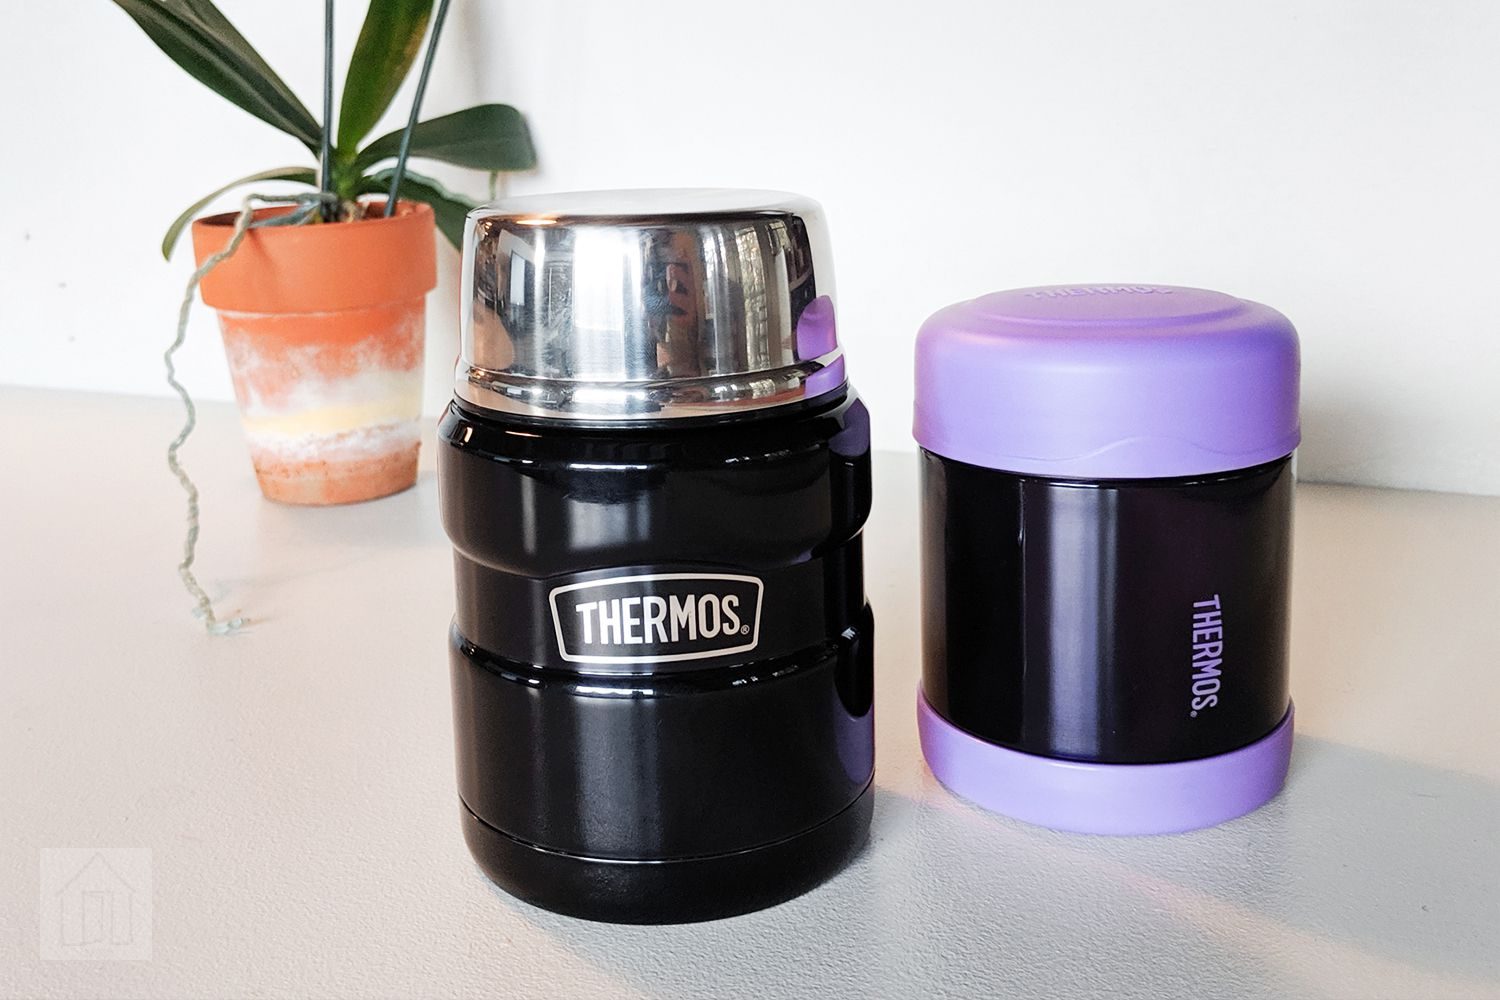 Thermos FUNtainer Stainless Steel Food Jar